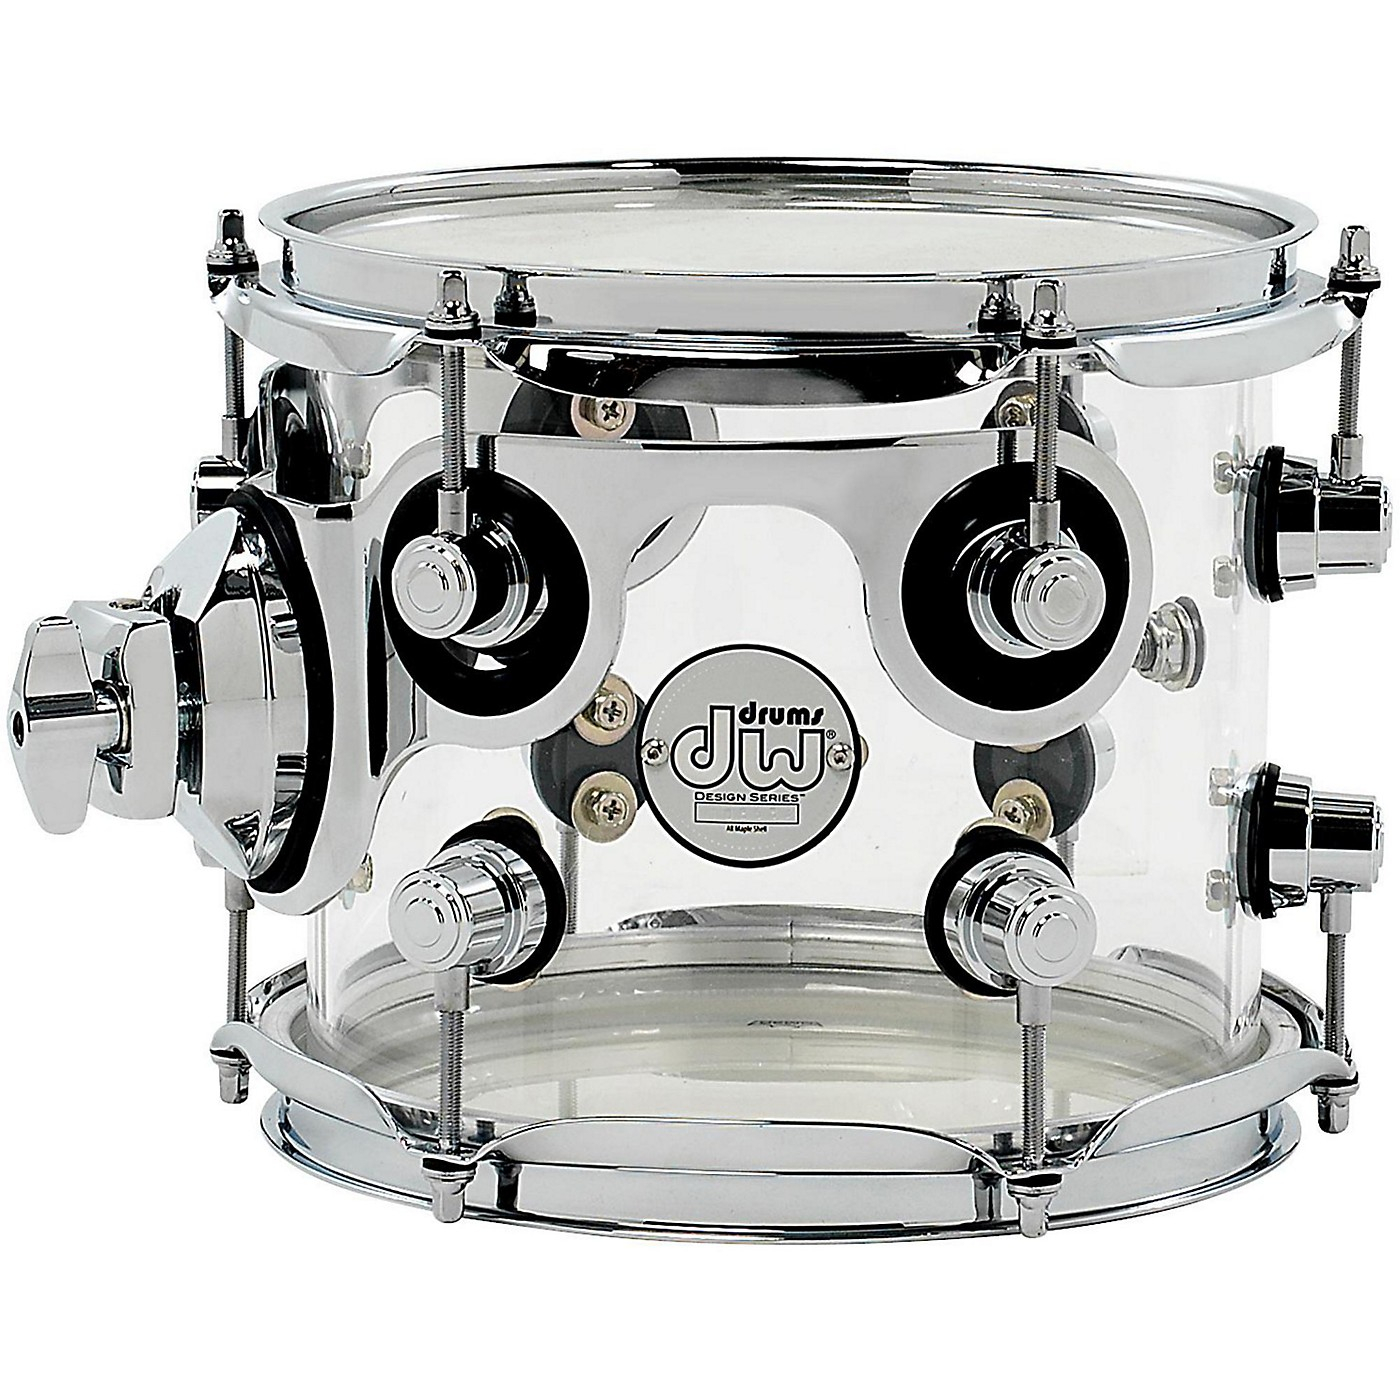 DW Design Series Acrylic Tom with Chrome Hardware thumbnail